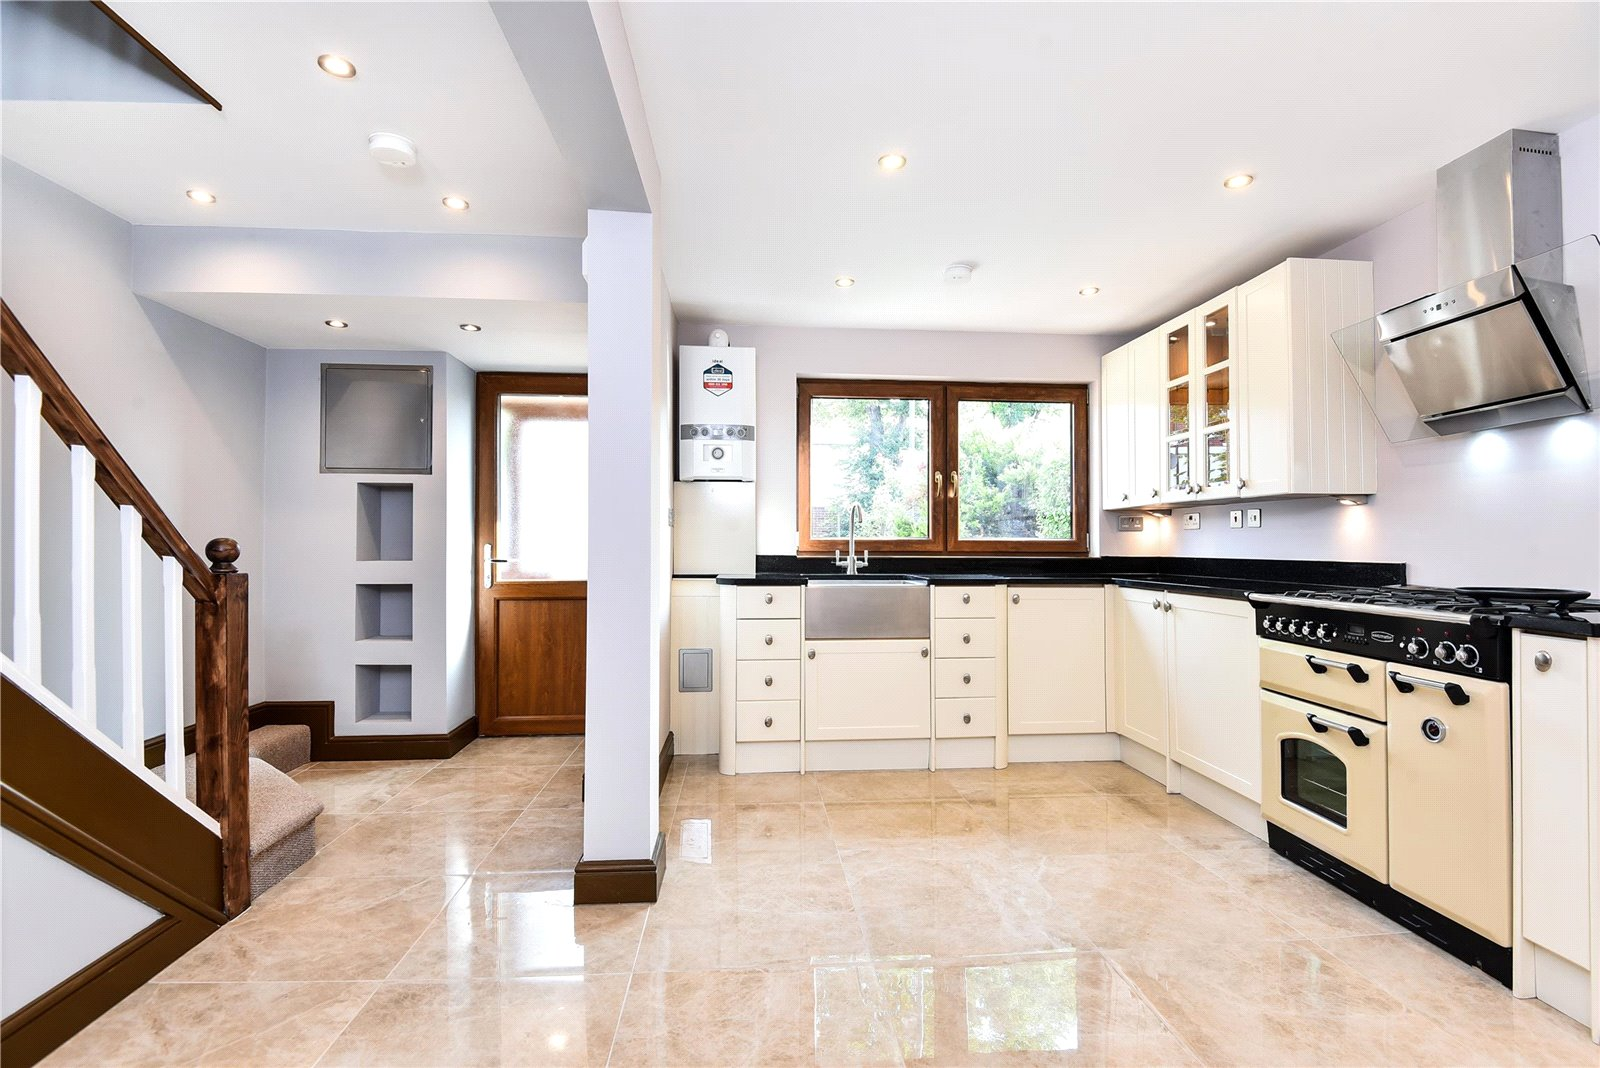 3 bed house for sale in Streatham 1